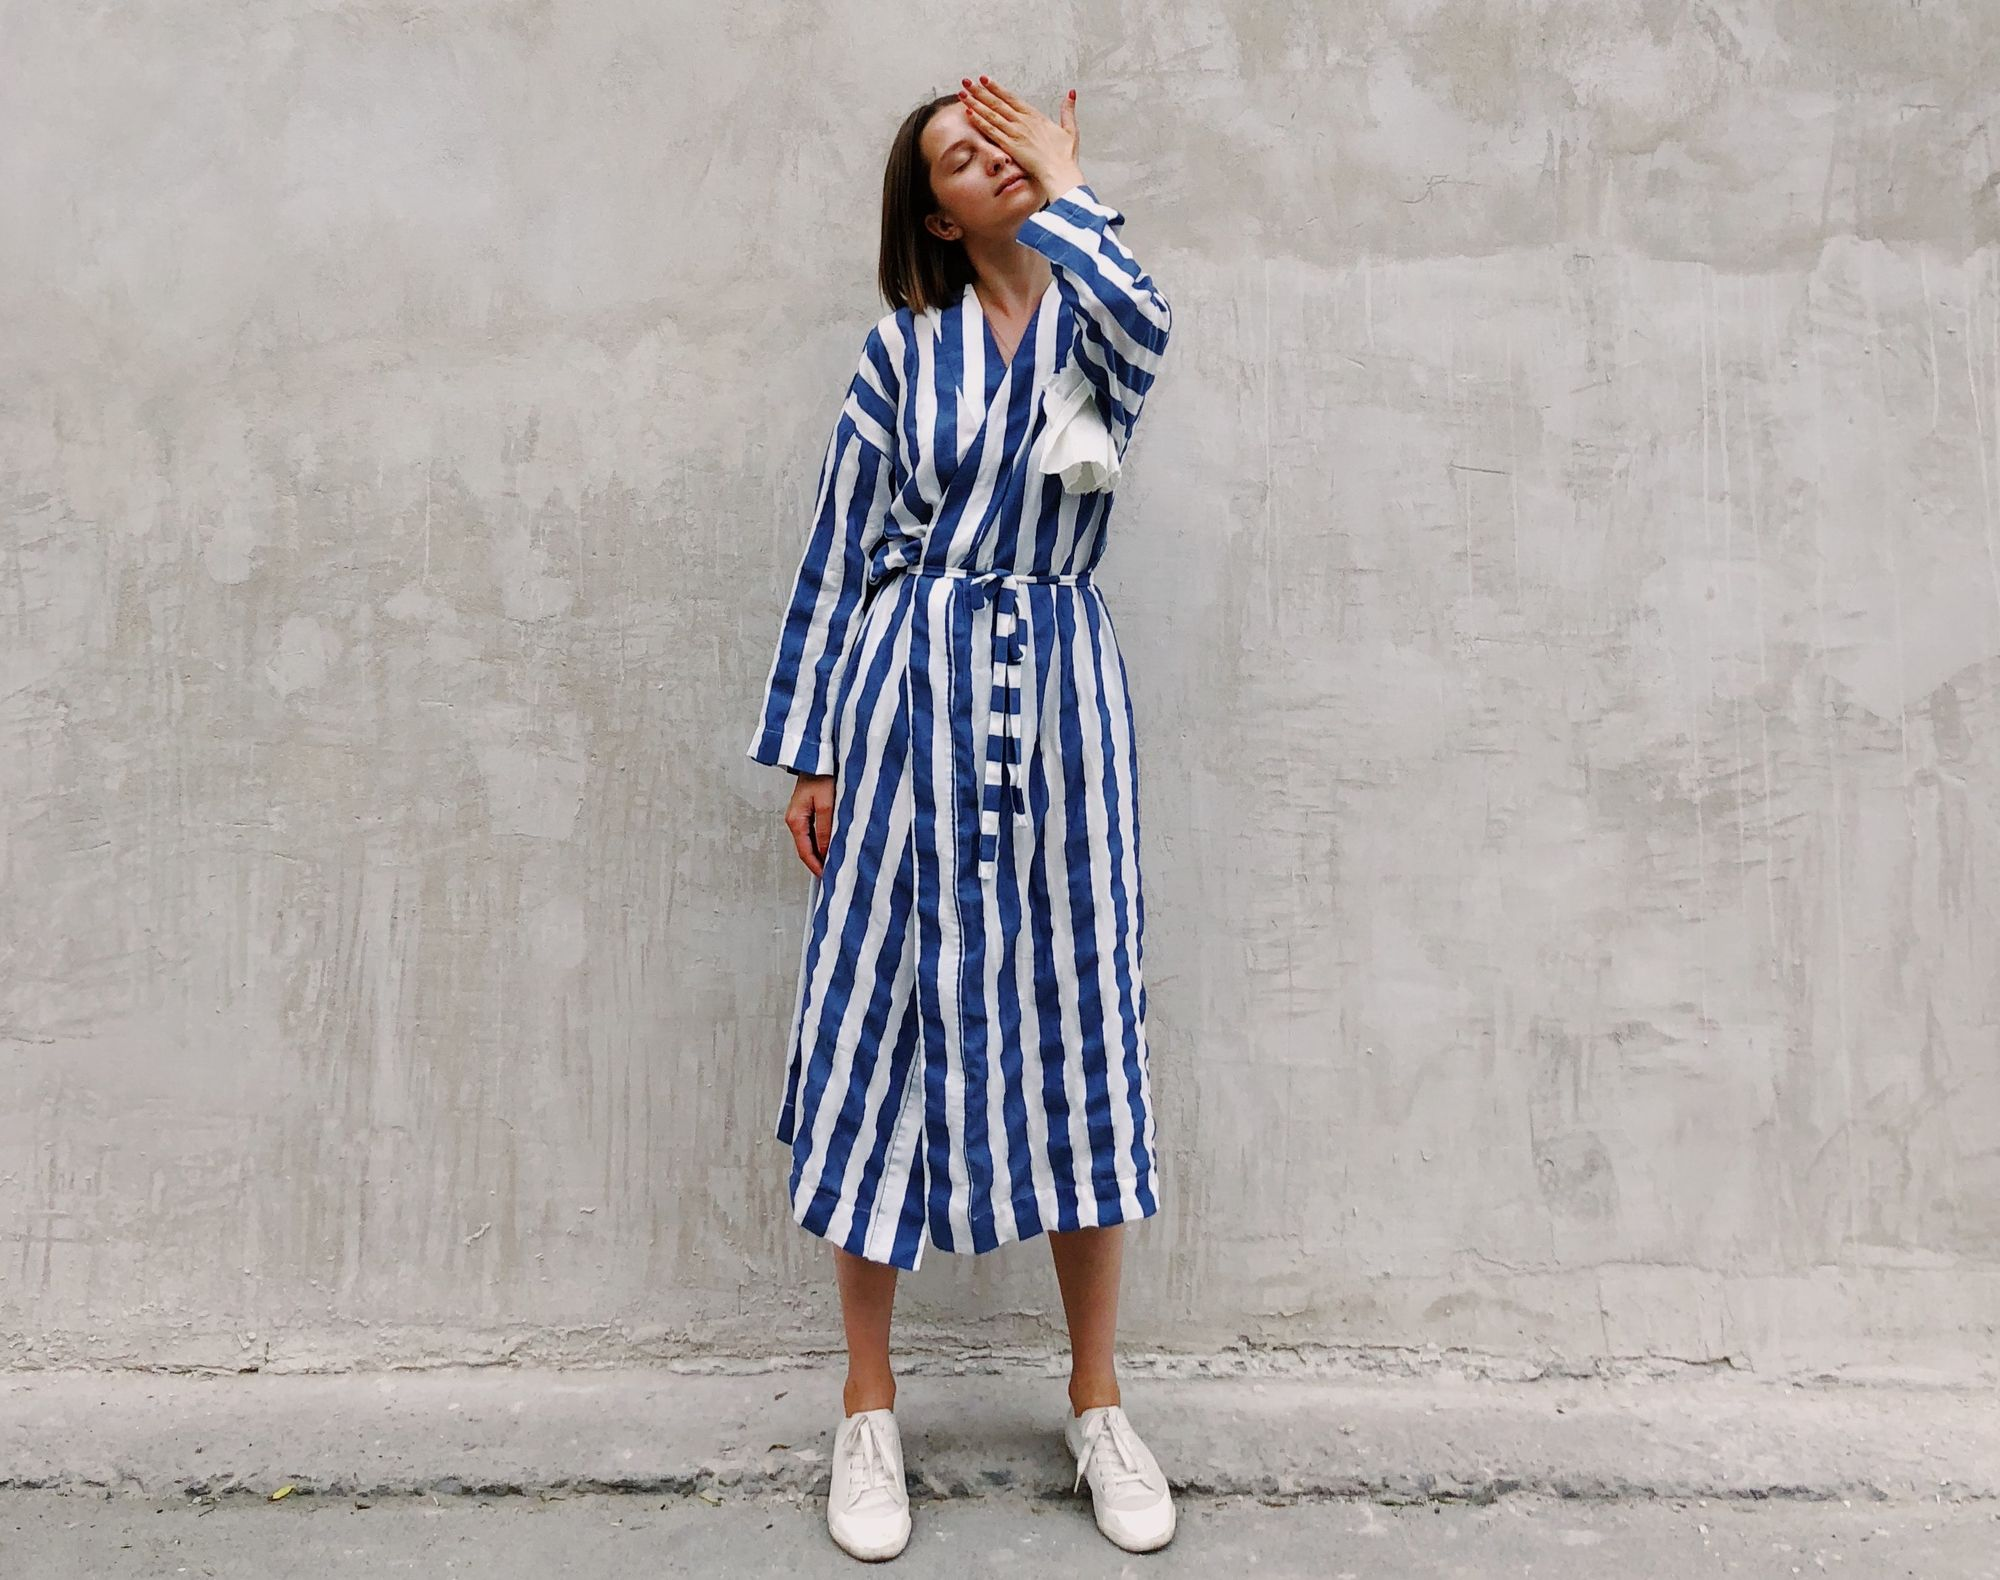 Top Sustainable Fashion Brands to Shop This Spring